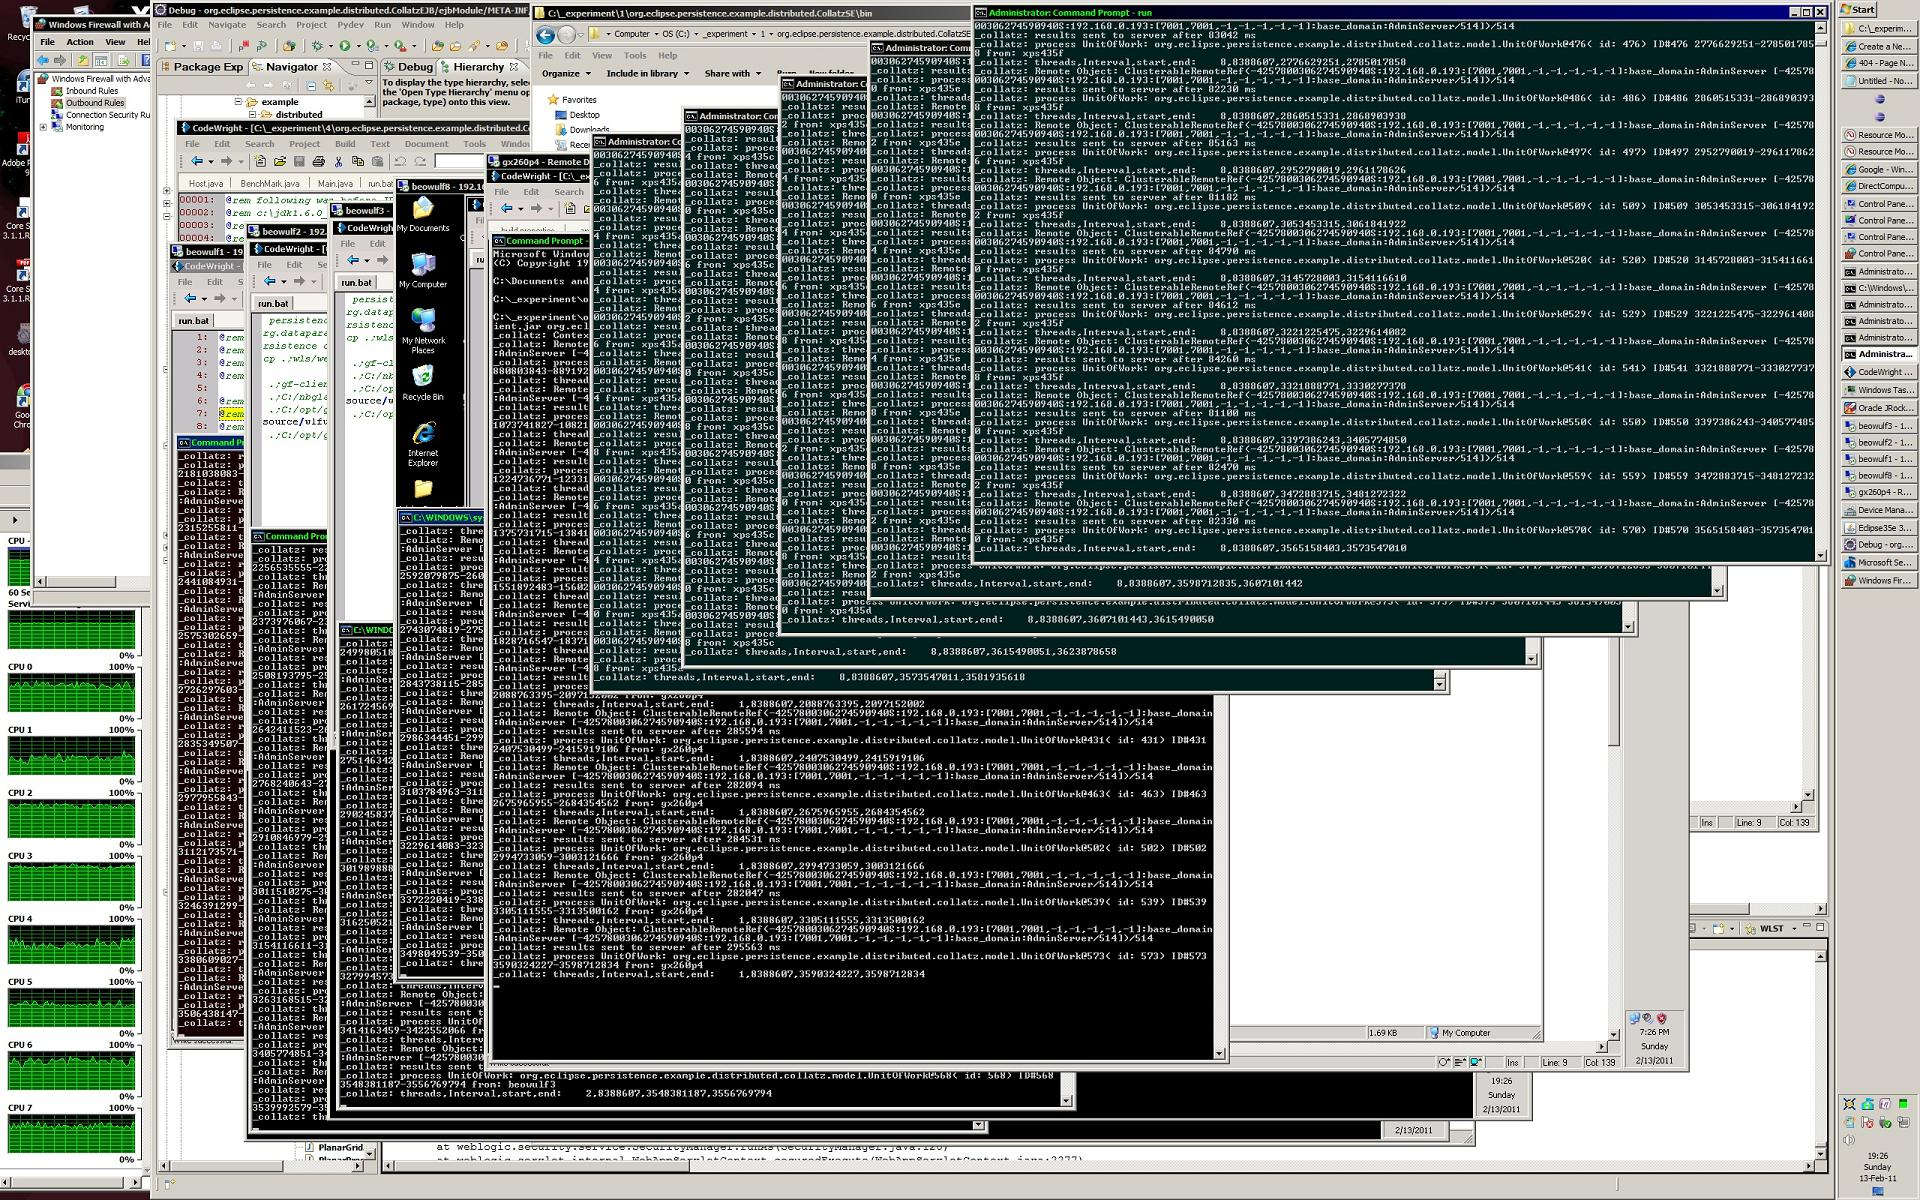 20110213 collatz proto cluster screen cap 12 threads 2.JPG